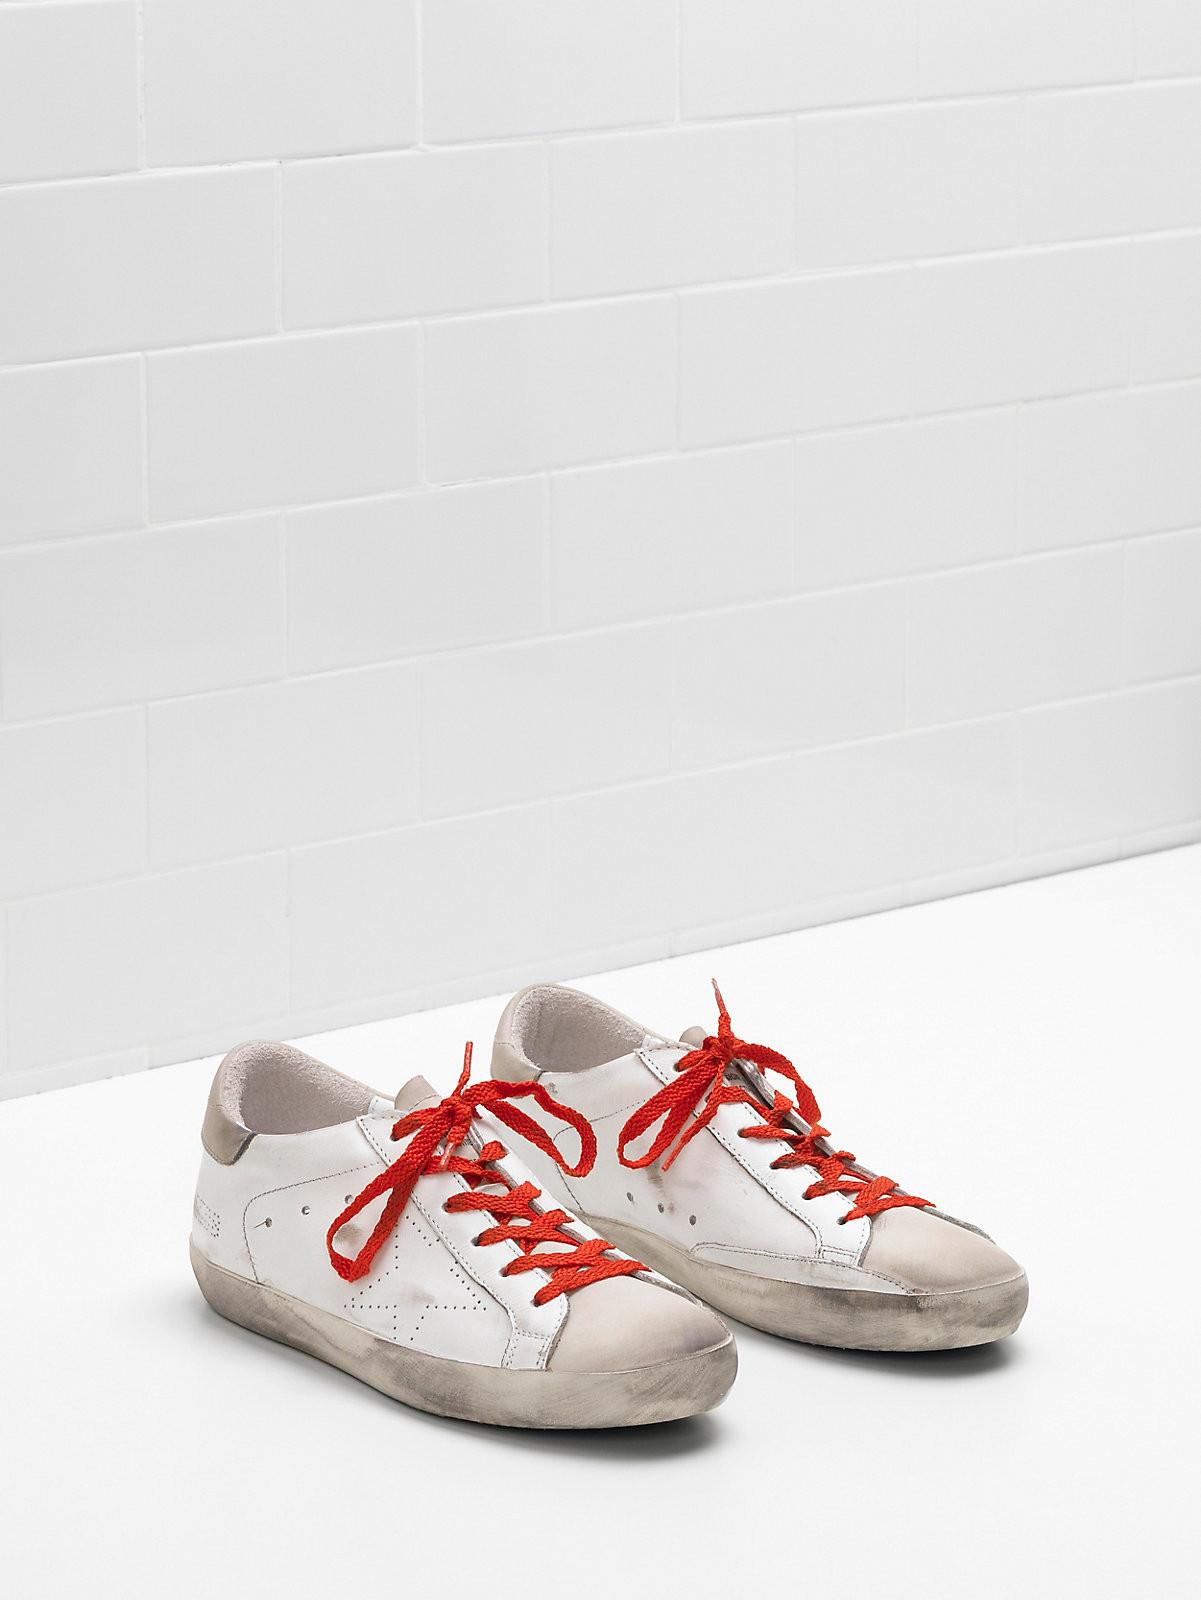 8fcb5a46f1967 Online Shop Designer Shoes Golden Goose Ggdb Old Style Sneakers Genuine  Leather Villous Dermis Mens Women Luxury Superstar Trainers N008 White  Mountain ...